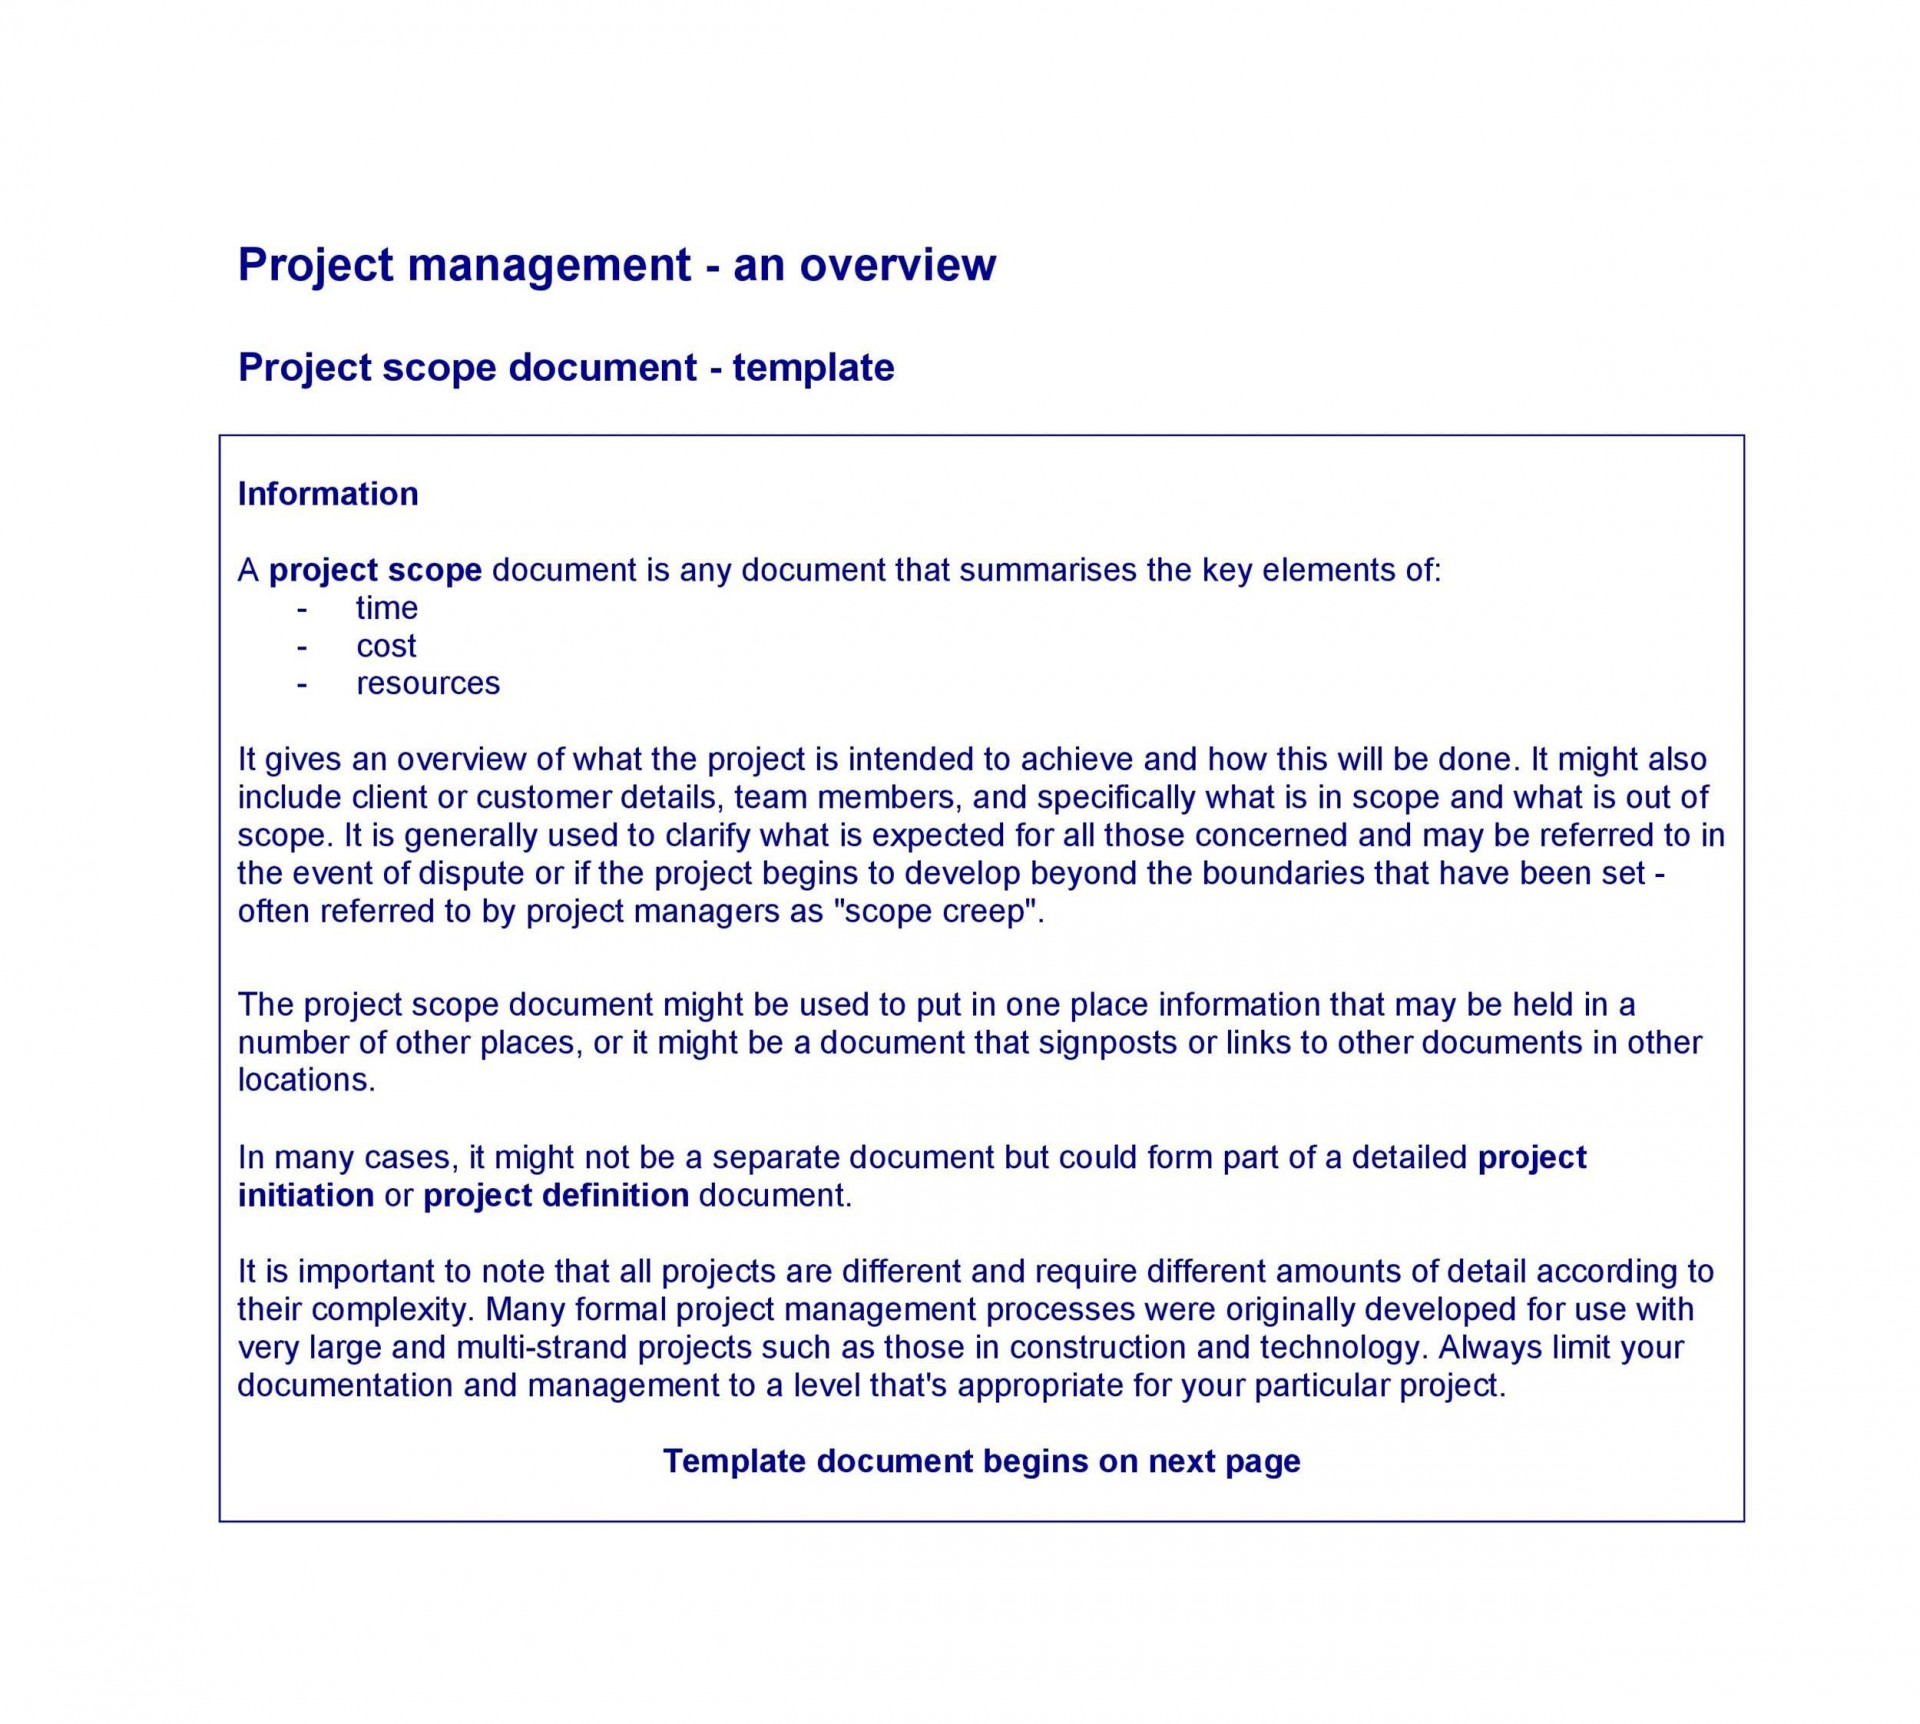 003 Excellent Statement Of Work Example Project Management Image 1920